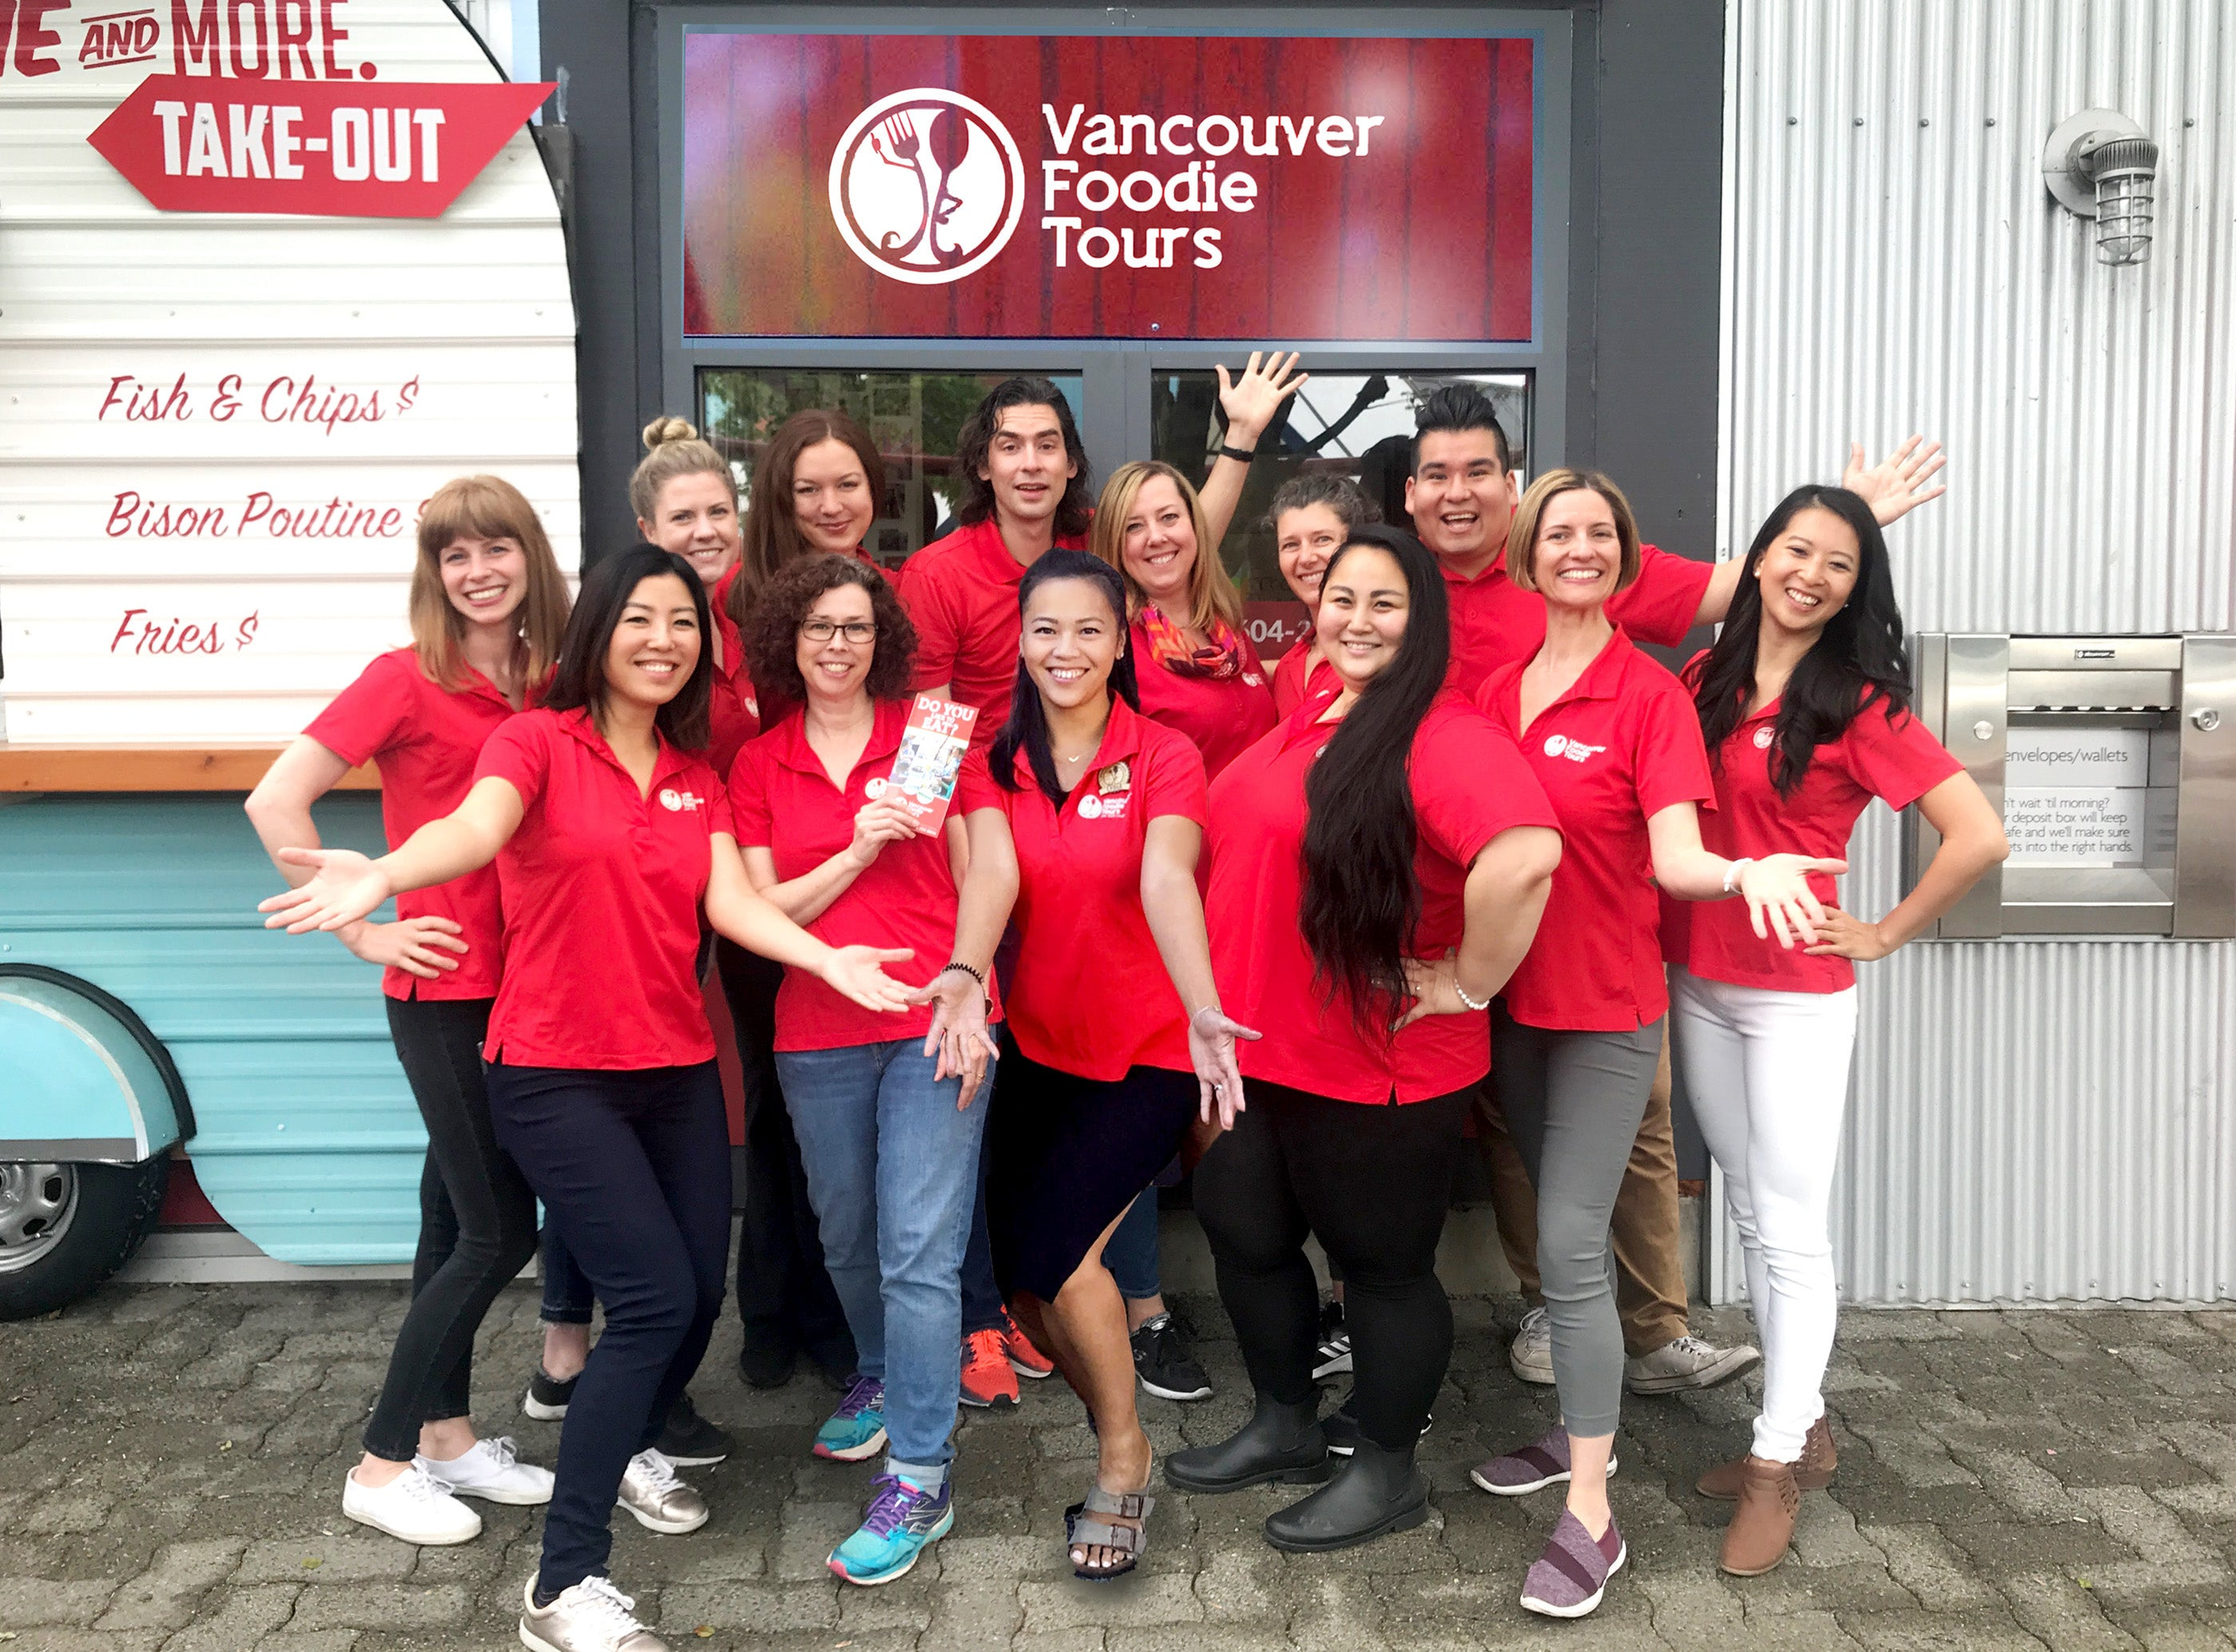 Vancouver Foodie Tours team in all red shirts